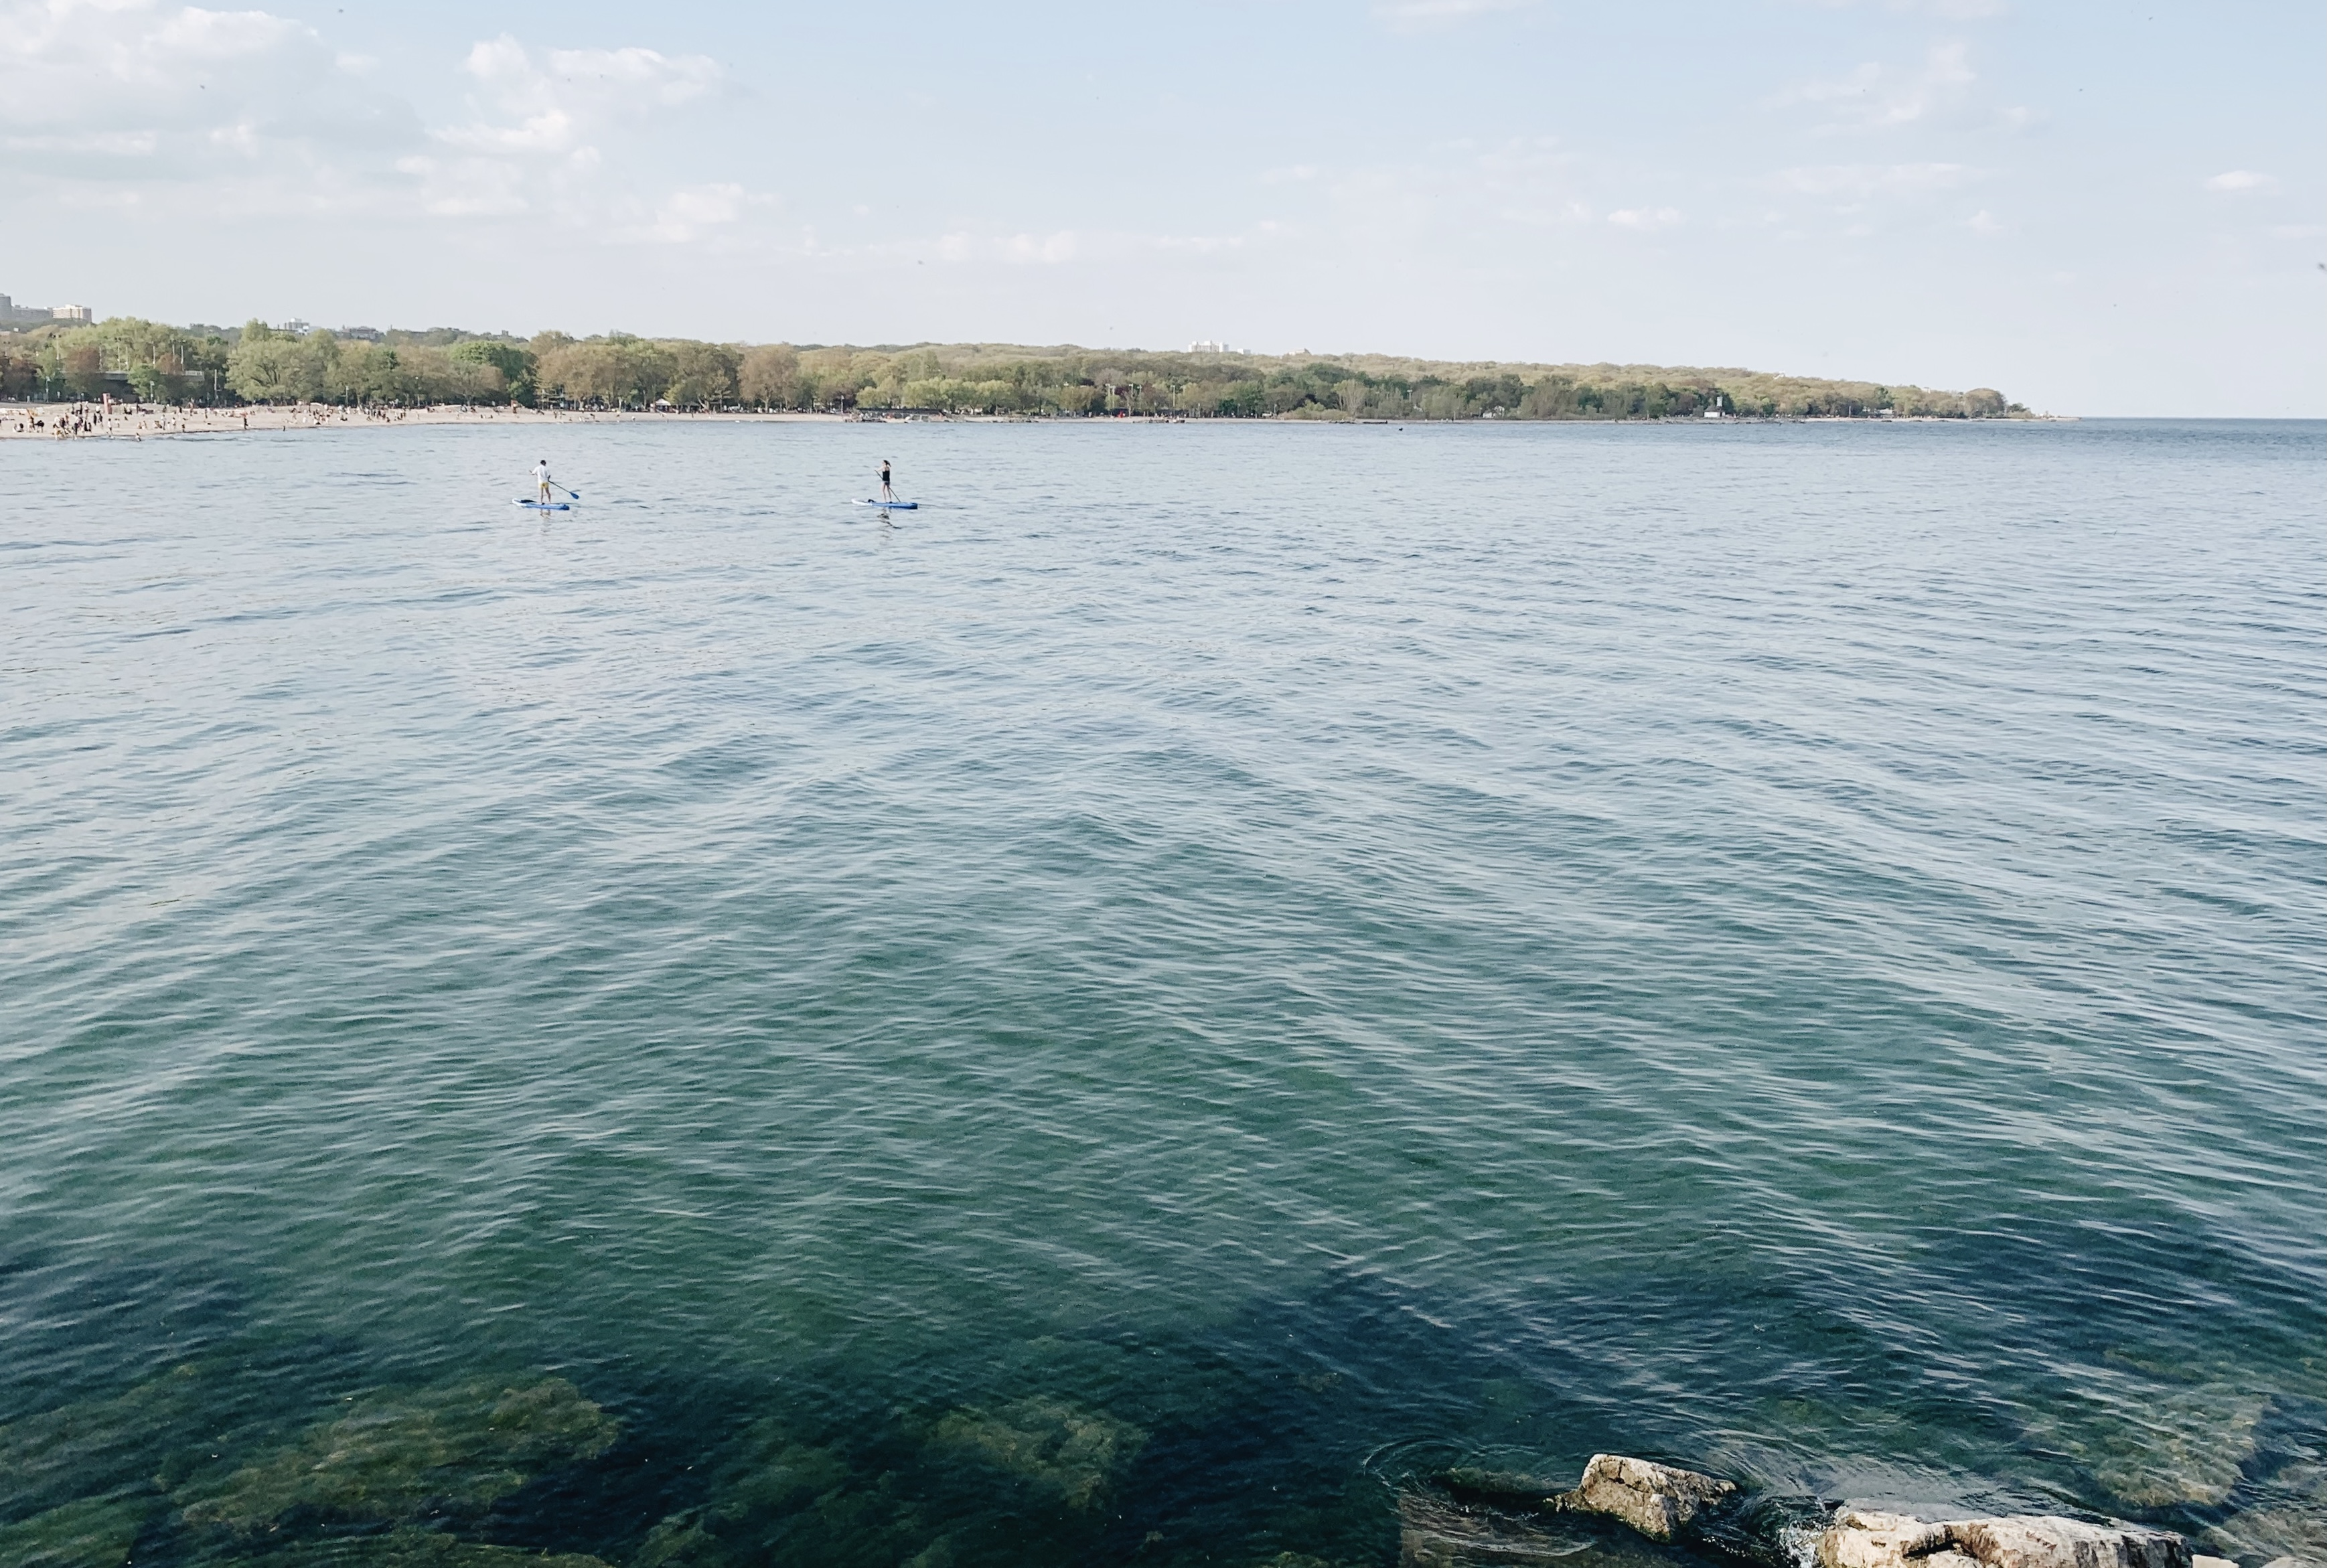 Foreground of blue water with a canopy of trees in the background. Two paddleboarders are on the lake.